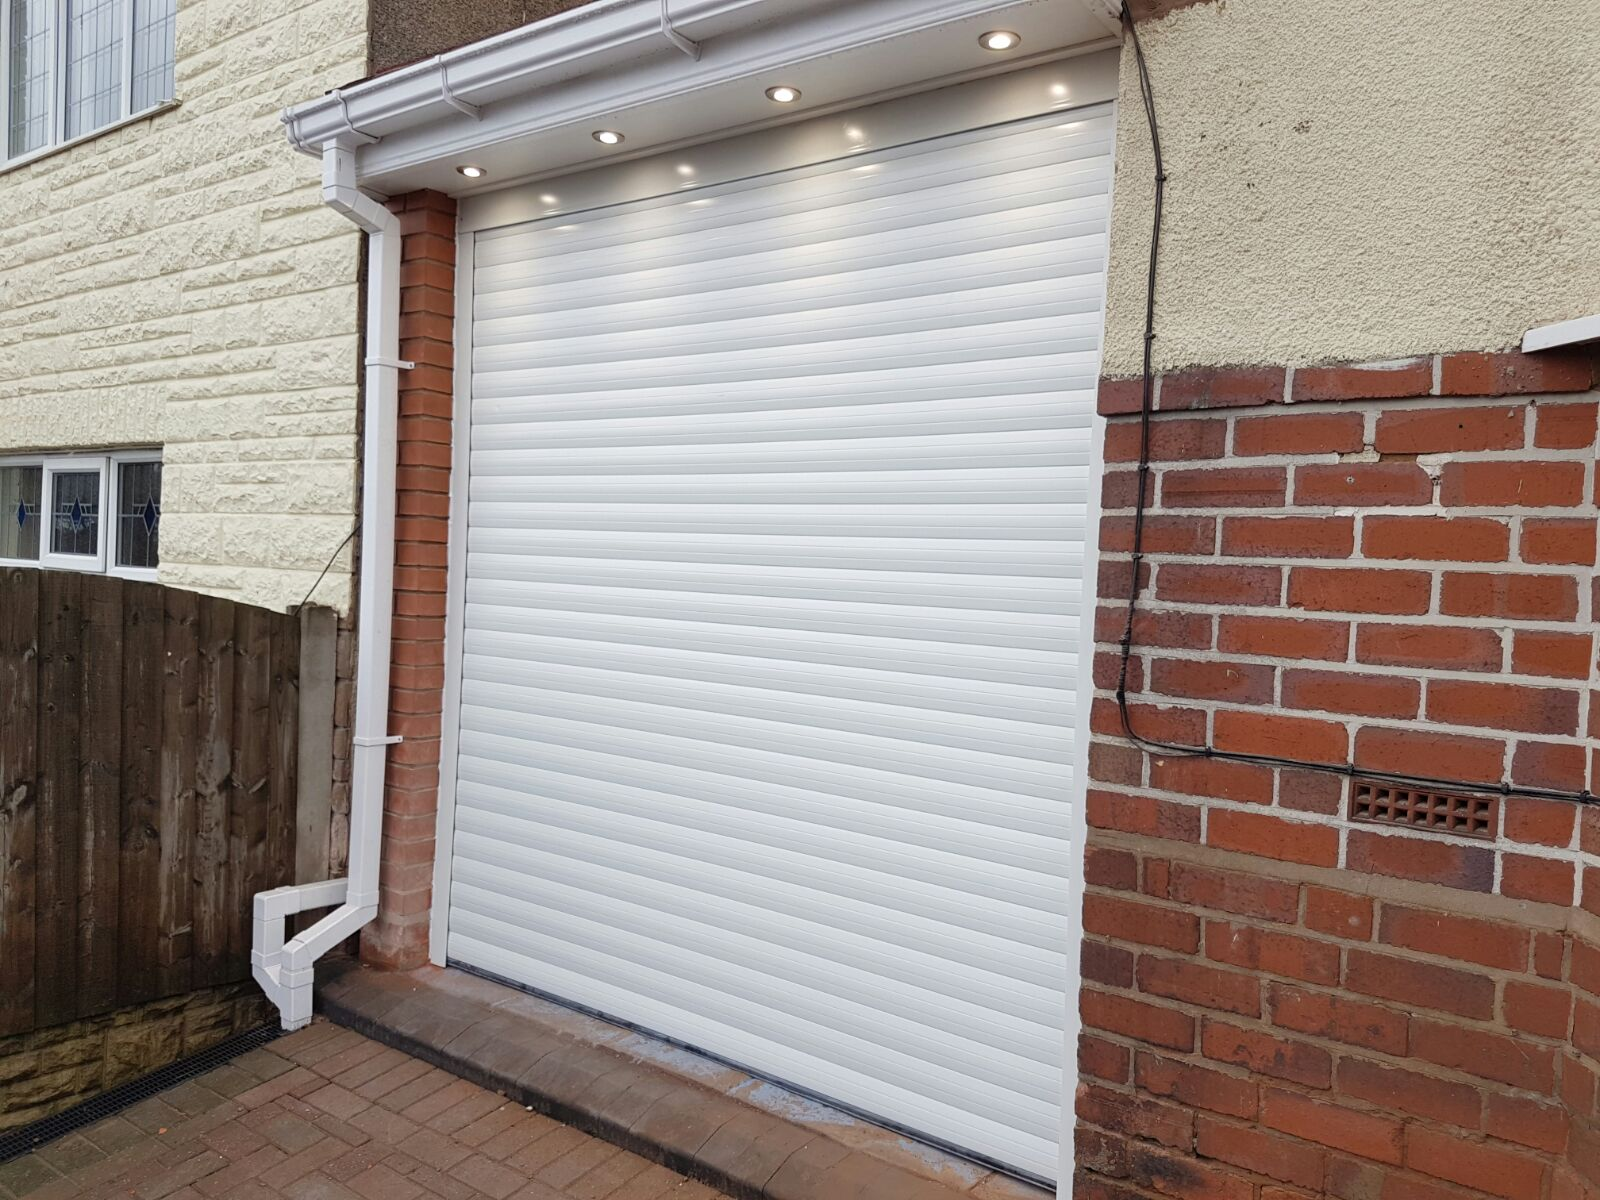 Just A Quick Note To Say Thank You For The Excellent Service Your Company  Gave From Order Placement To Delivery. I Have Fitted The Garage Door And I  Am ...